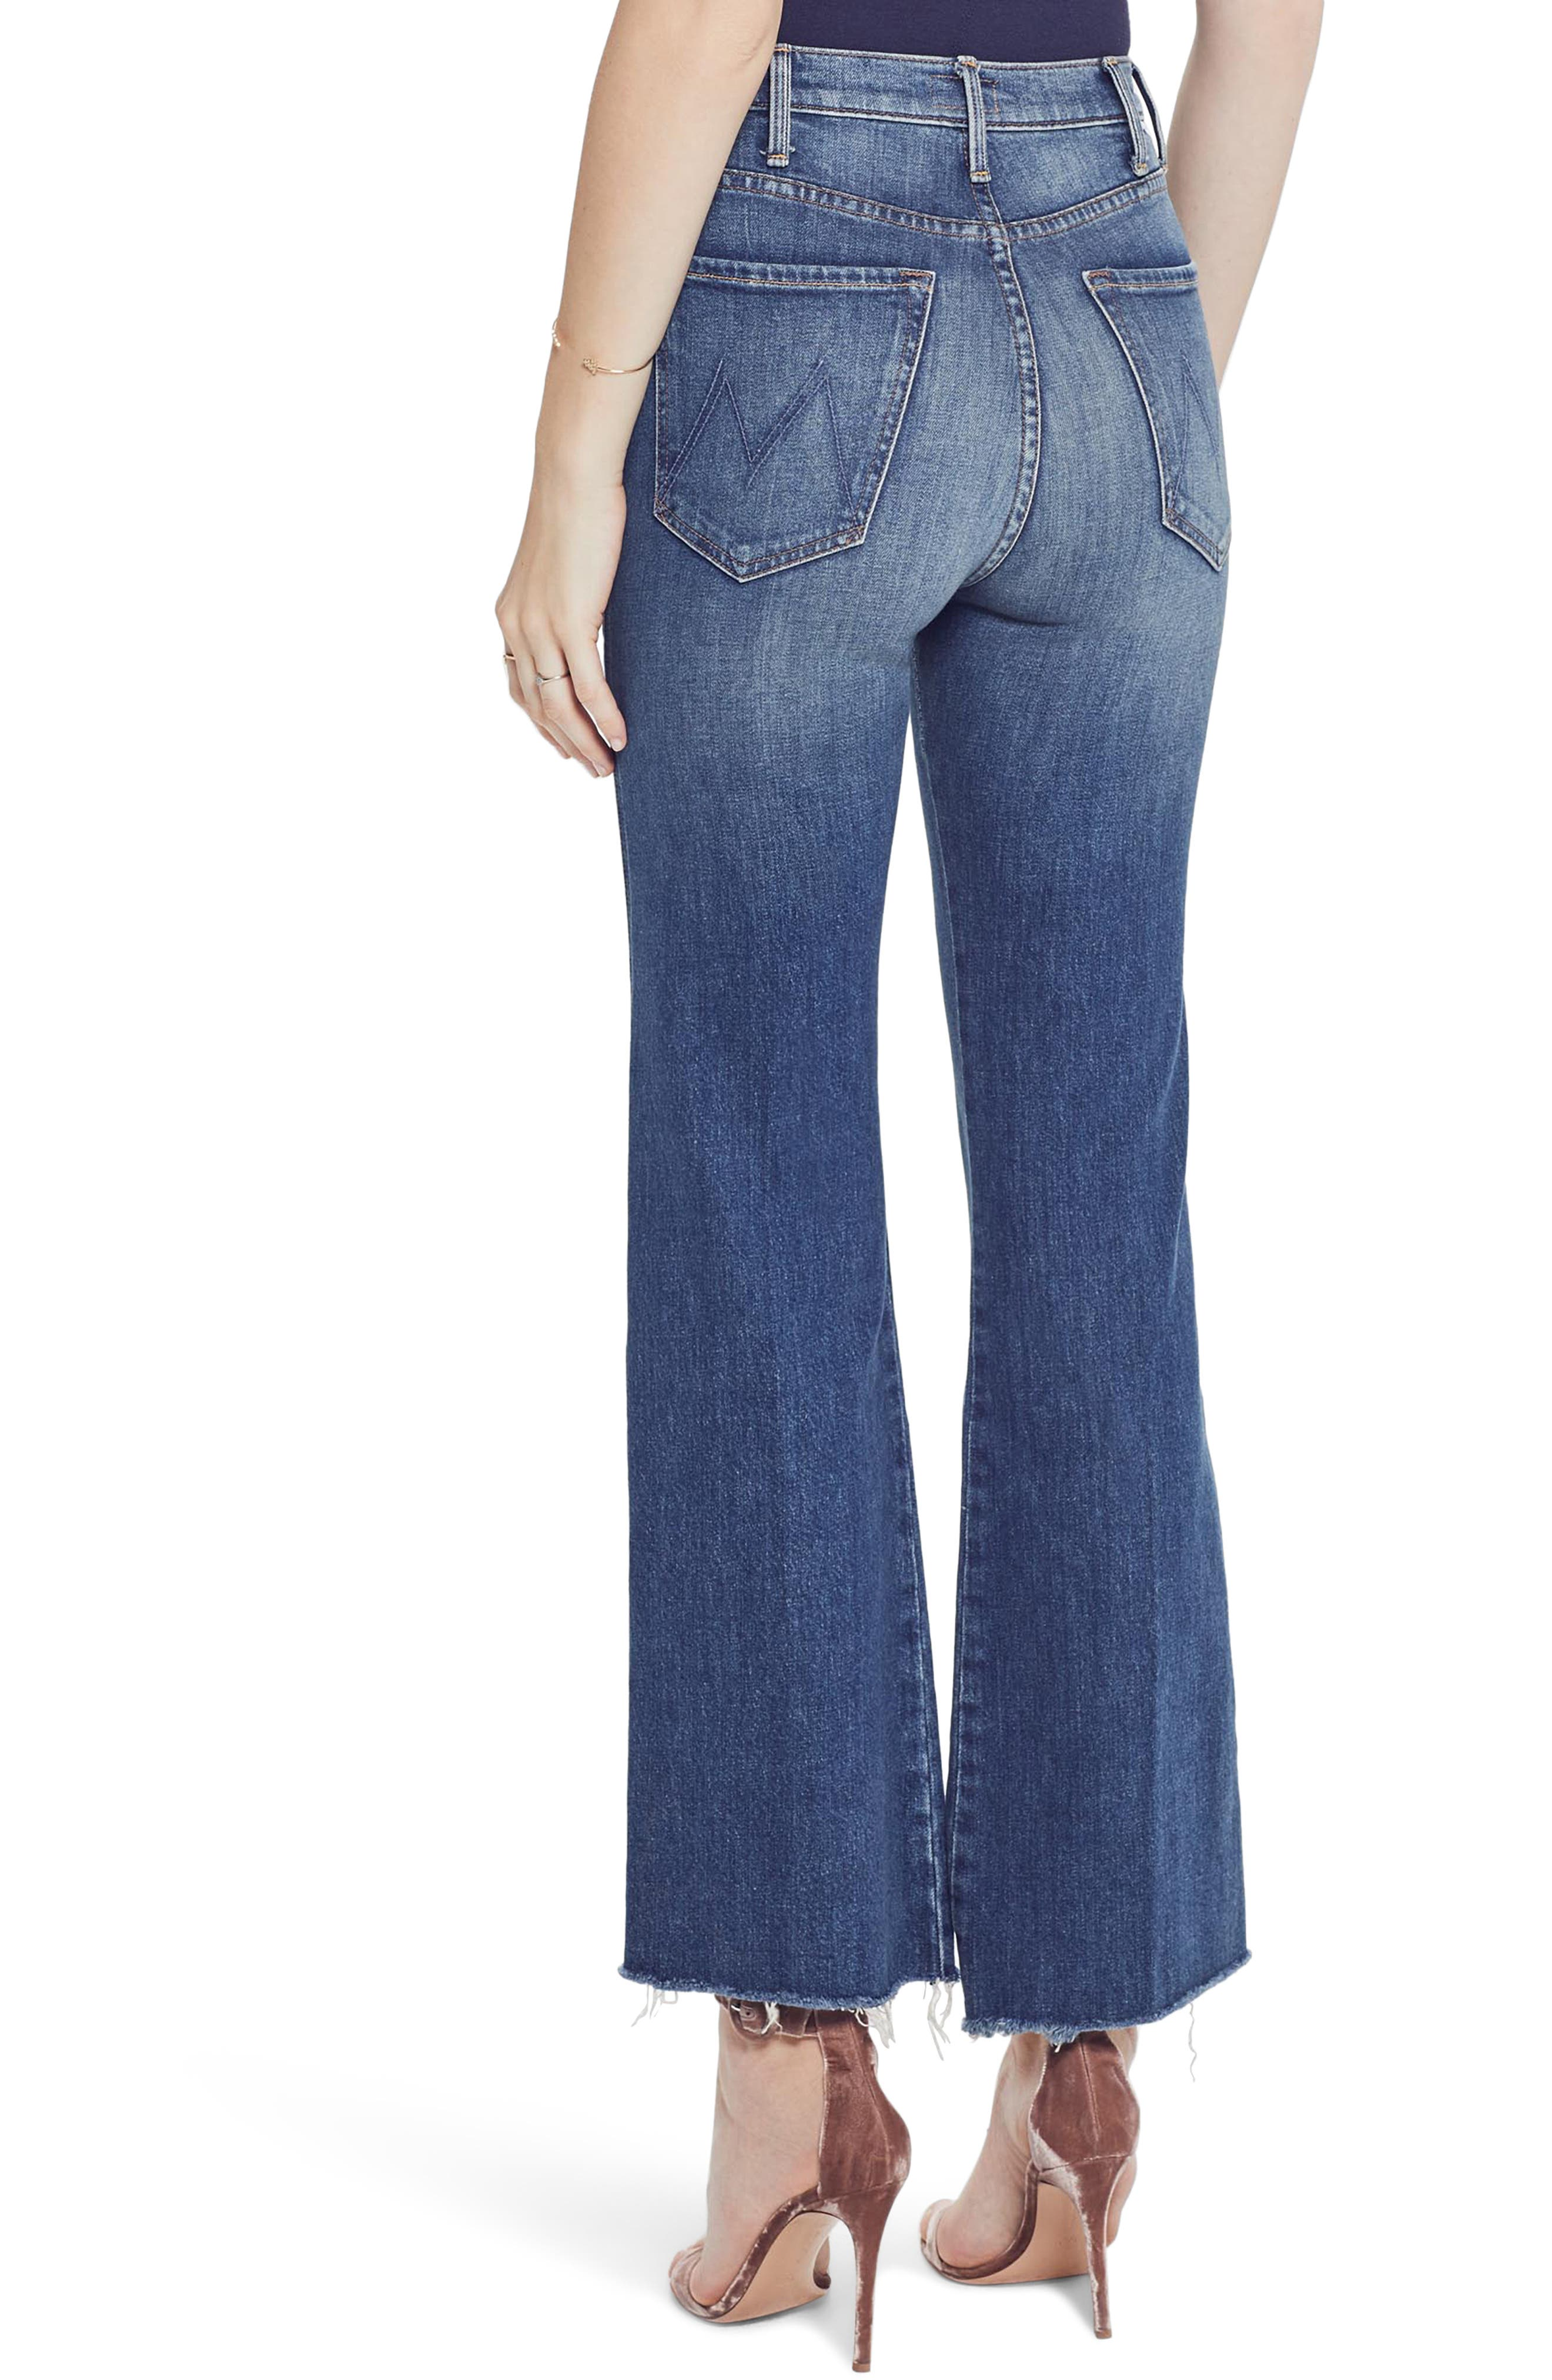 MOTHER, The Tripper Super High Waist Frayed Bootcut Jeans, Alternate thumbnail 2, color, JUST ONE SIP